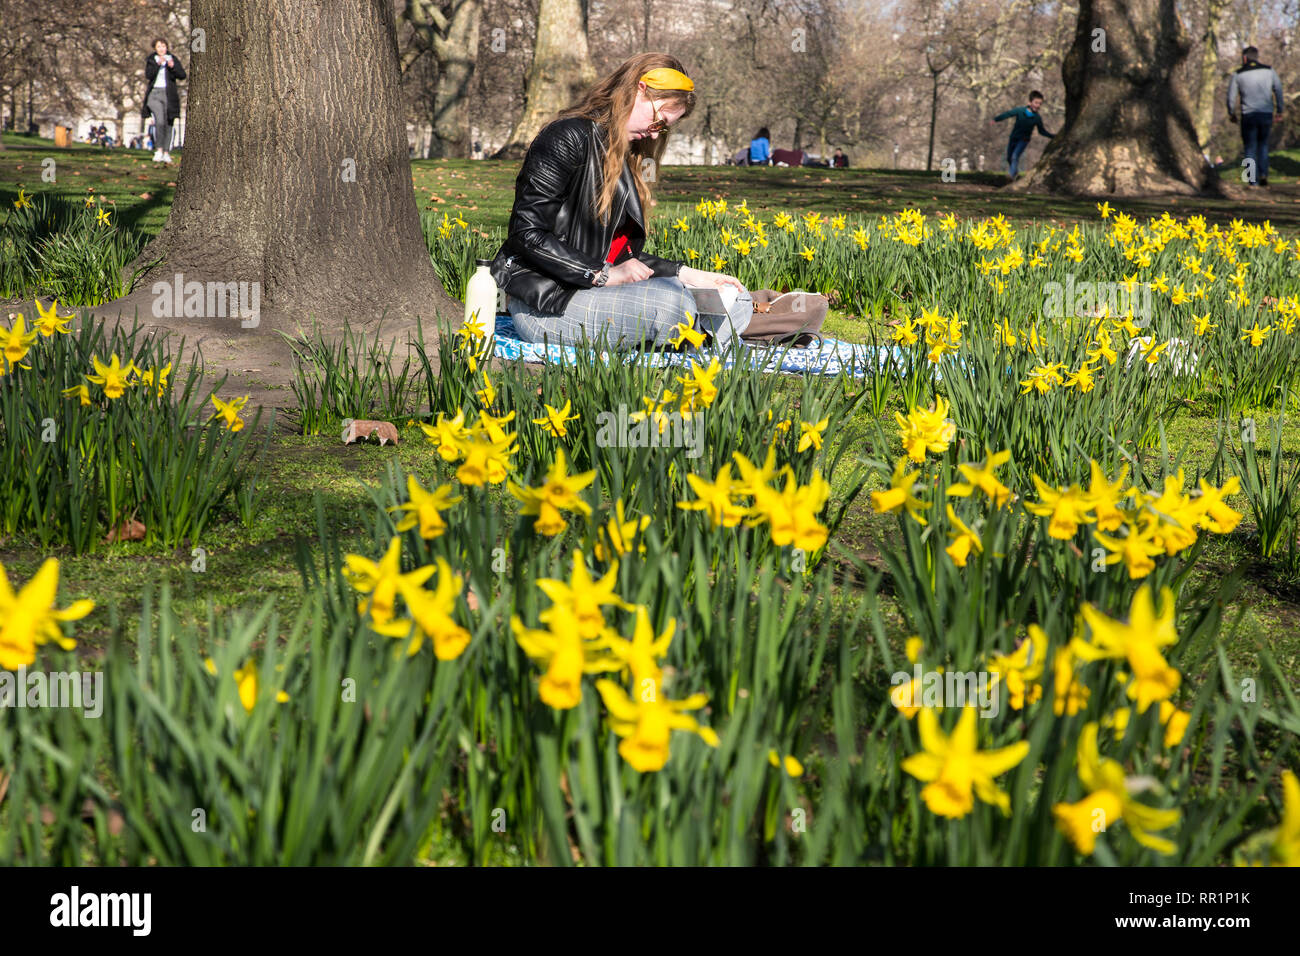 Fenna Harm (19) from germany enjoys the warm temperatures as Spring arrives in St James park, London, England UK 23rd February, 2019 Stock Photo